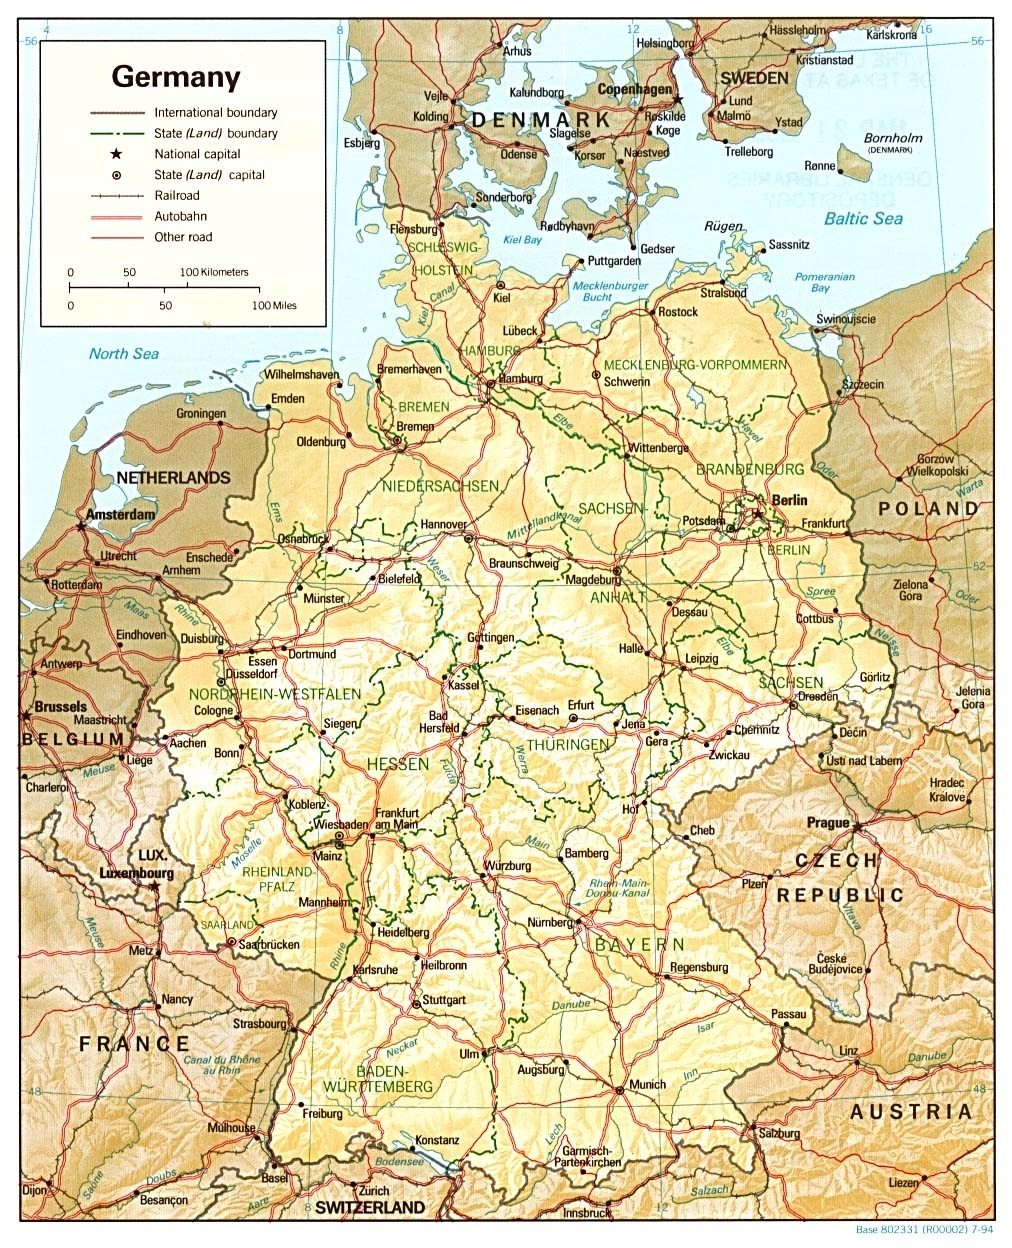 Download Free Germany Maps intended for Germany Map Download Free